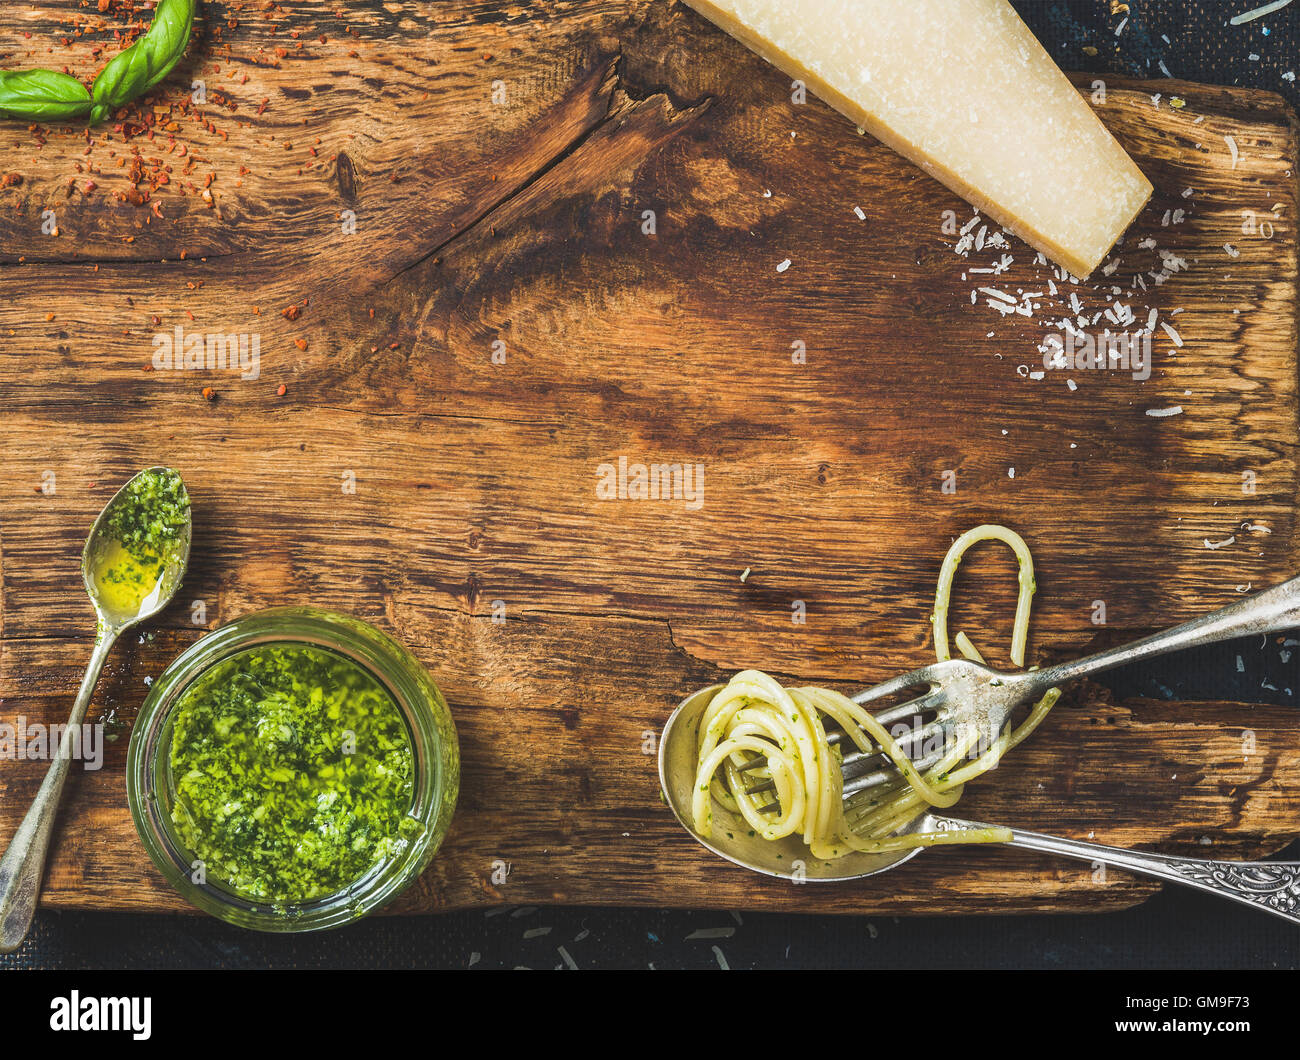 Italian cuisine cooking background on rustic wooden board texture - Stock Image